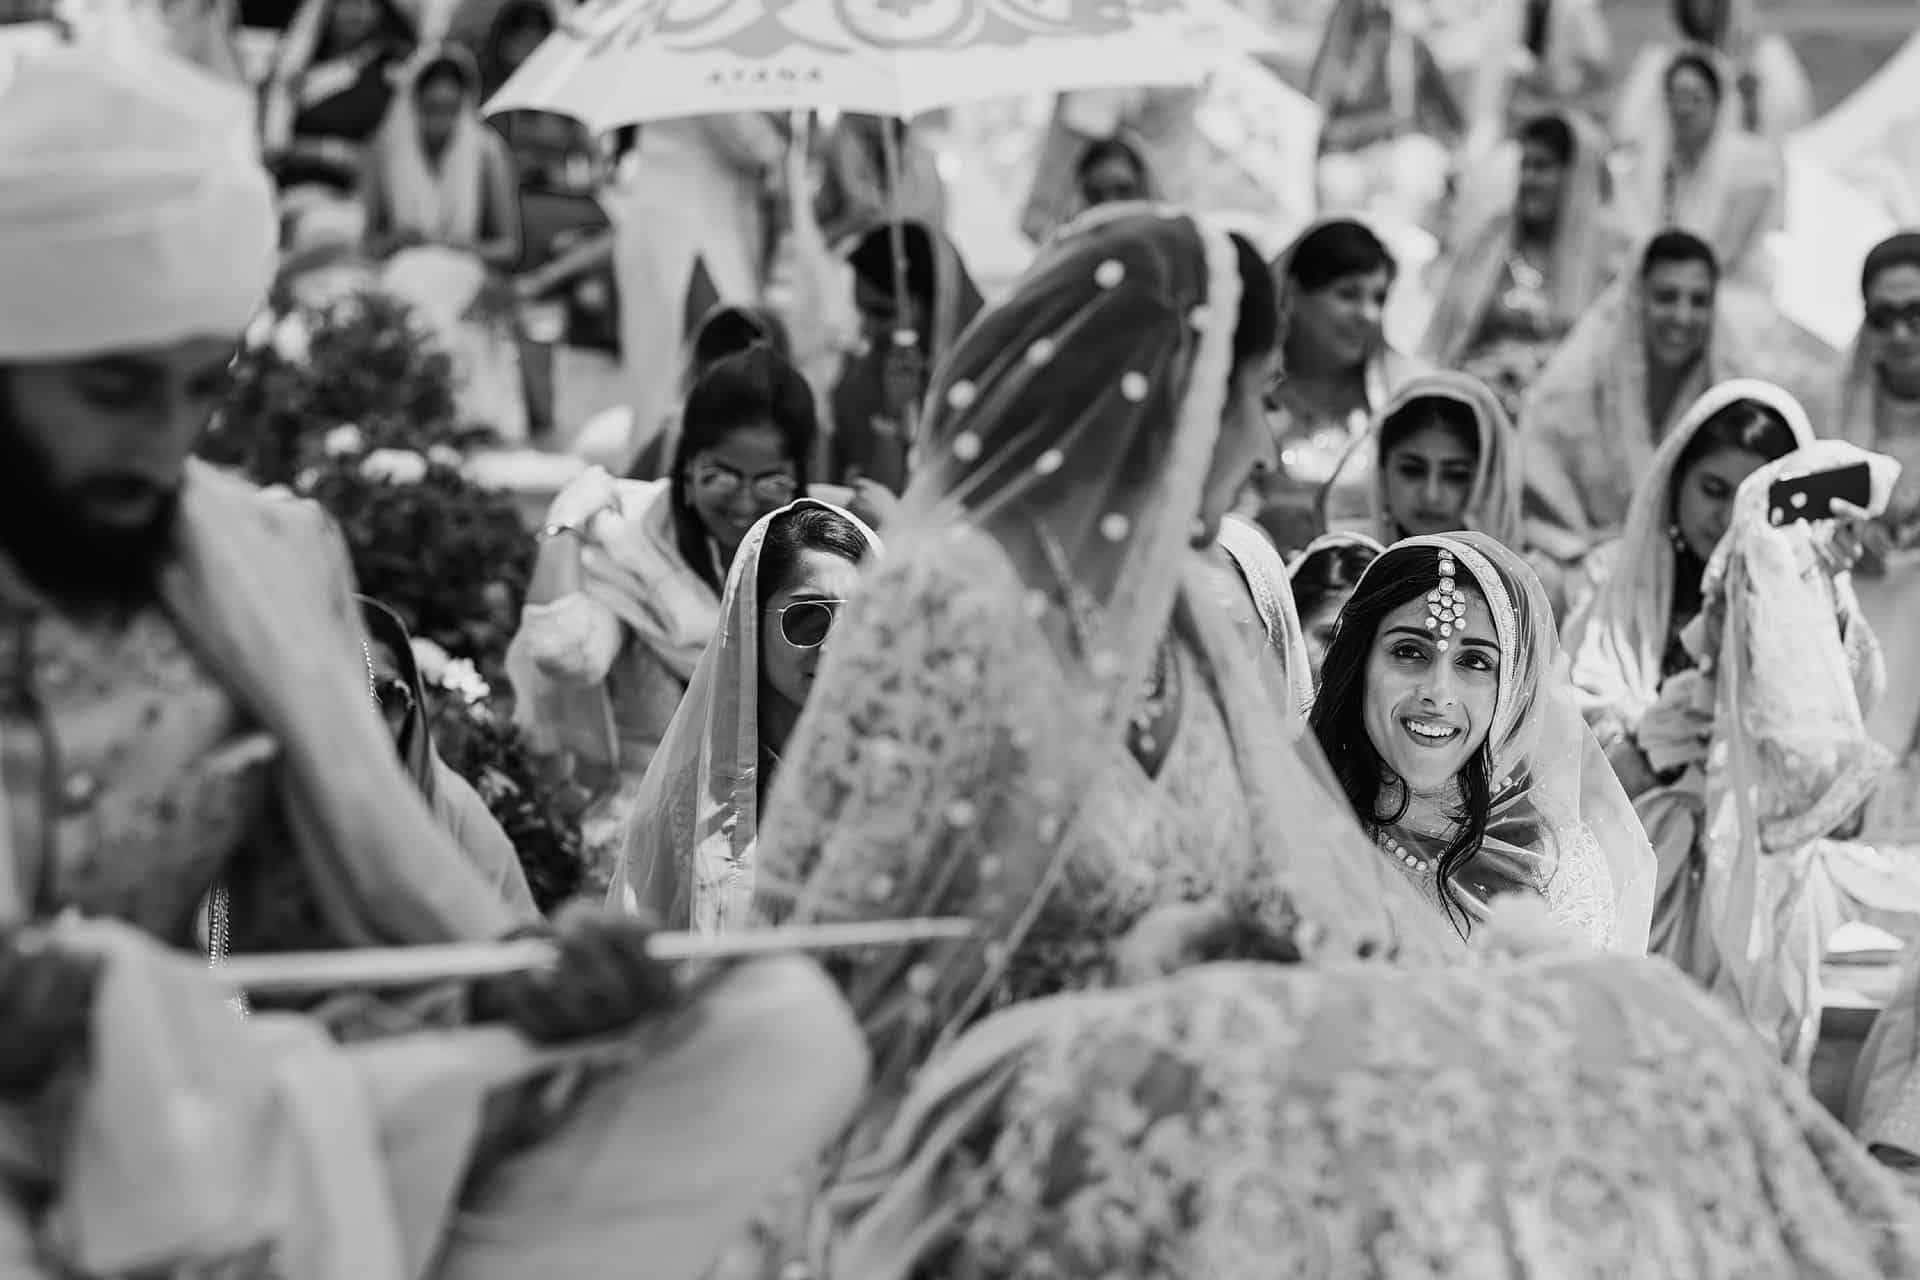 sikh wedding ceremony bali indonesia